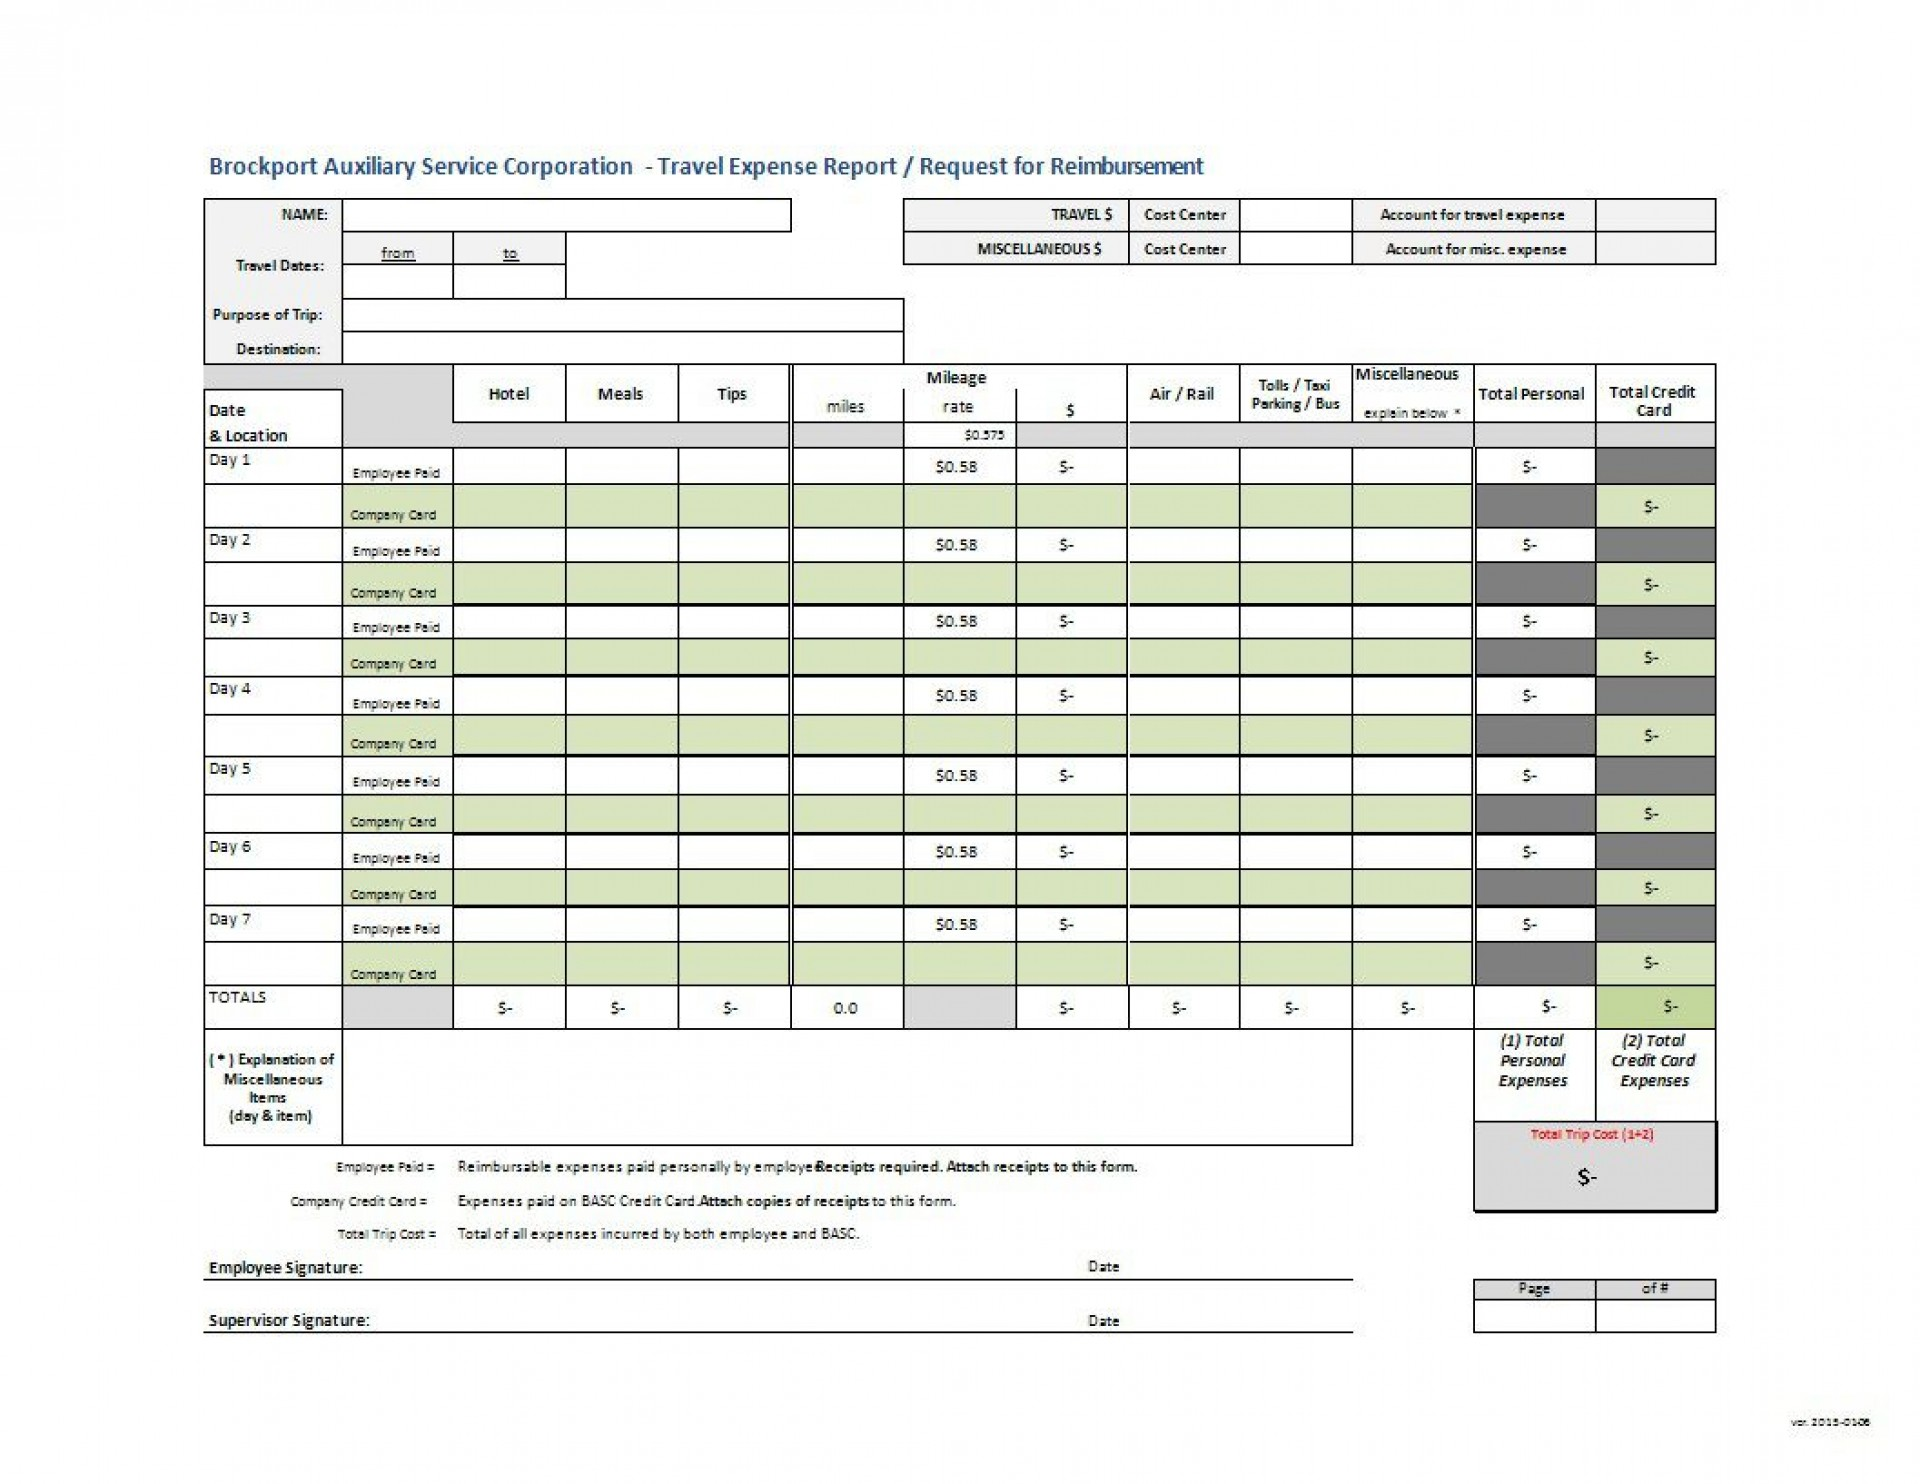 000 Archaicawful Travel Expense Report Template Highest Clarity  Format Excel Free1920